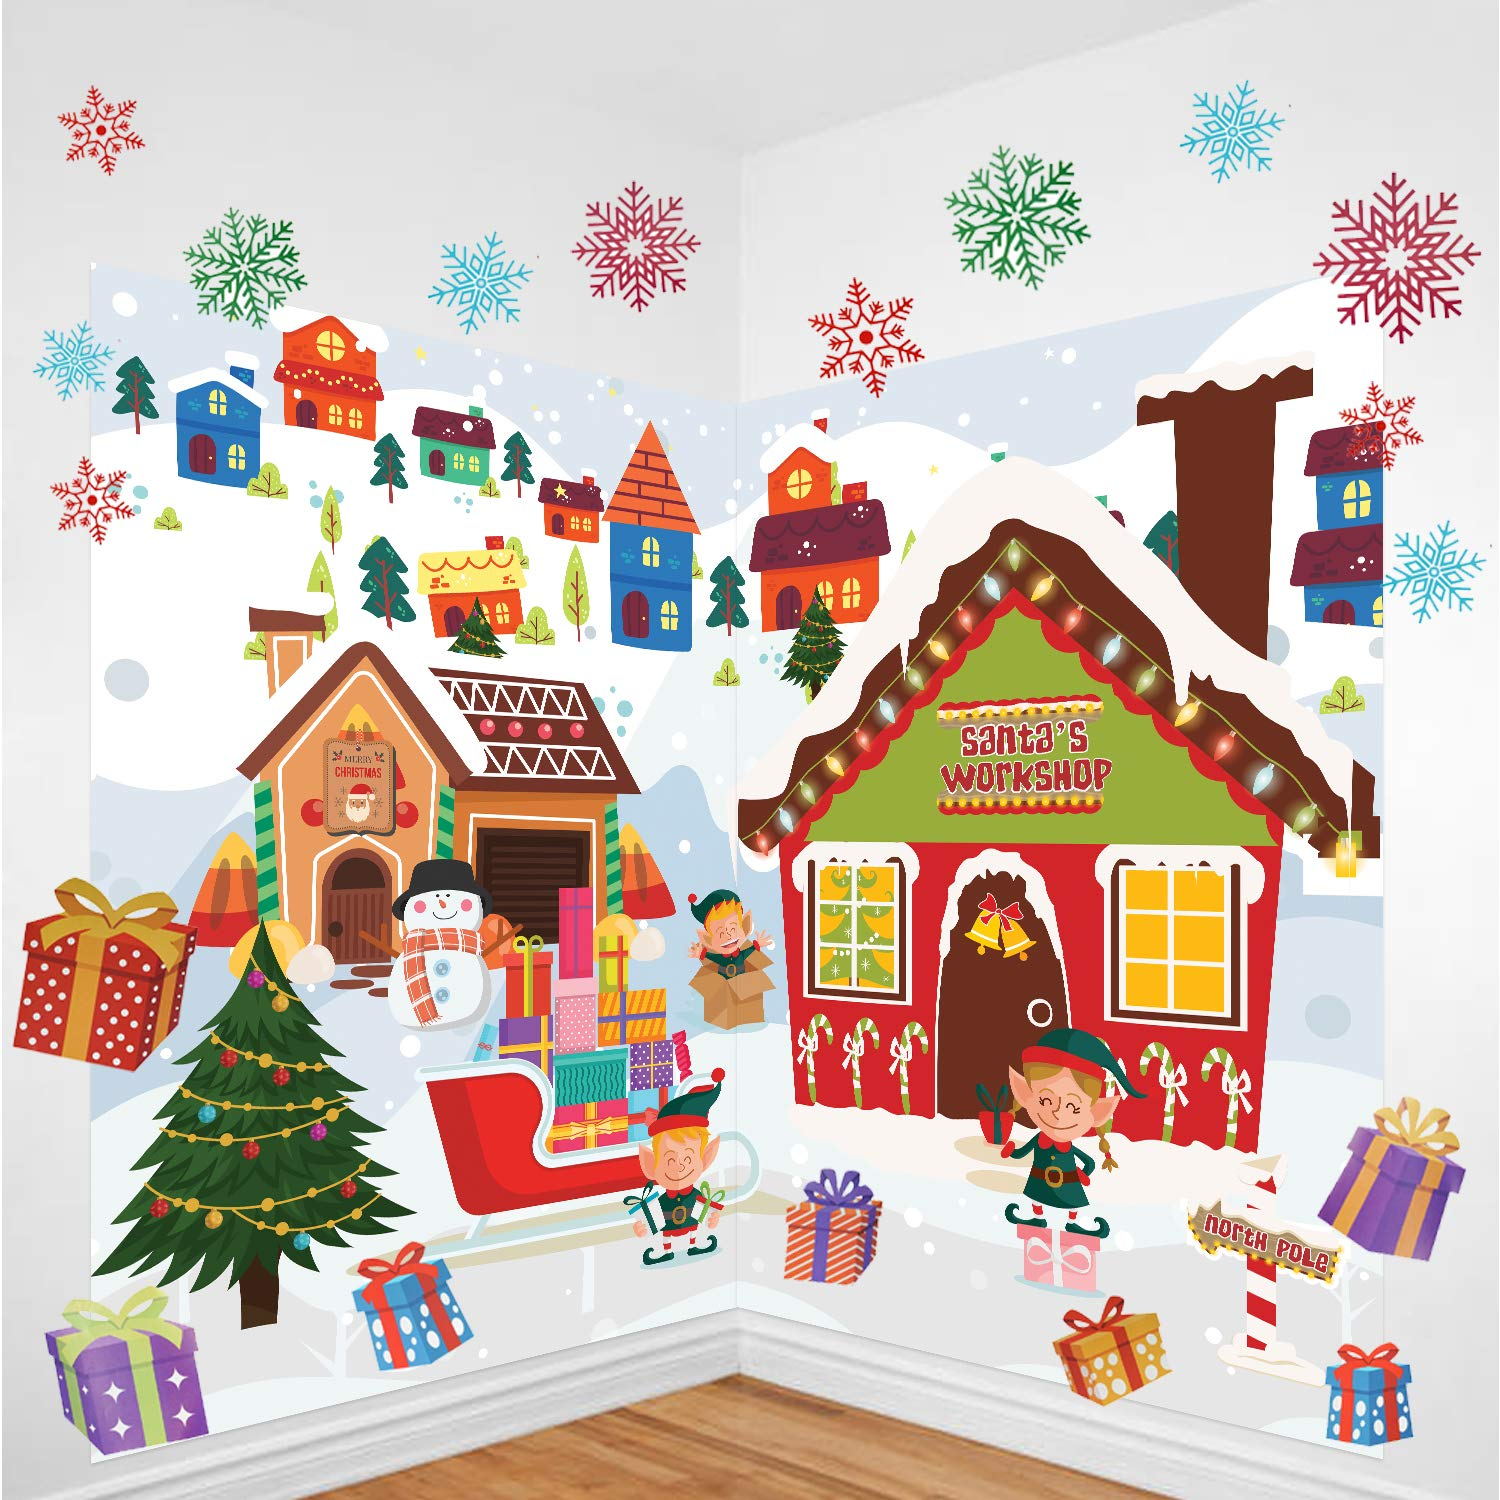 Massive Christmas Wall Decoration Set Including Two 60 x 90CM Pieces, Plus 30 Large Snowflake Decals and More, For Home and Office - Amazing Xmas Photo Backdrop Kompanion